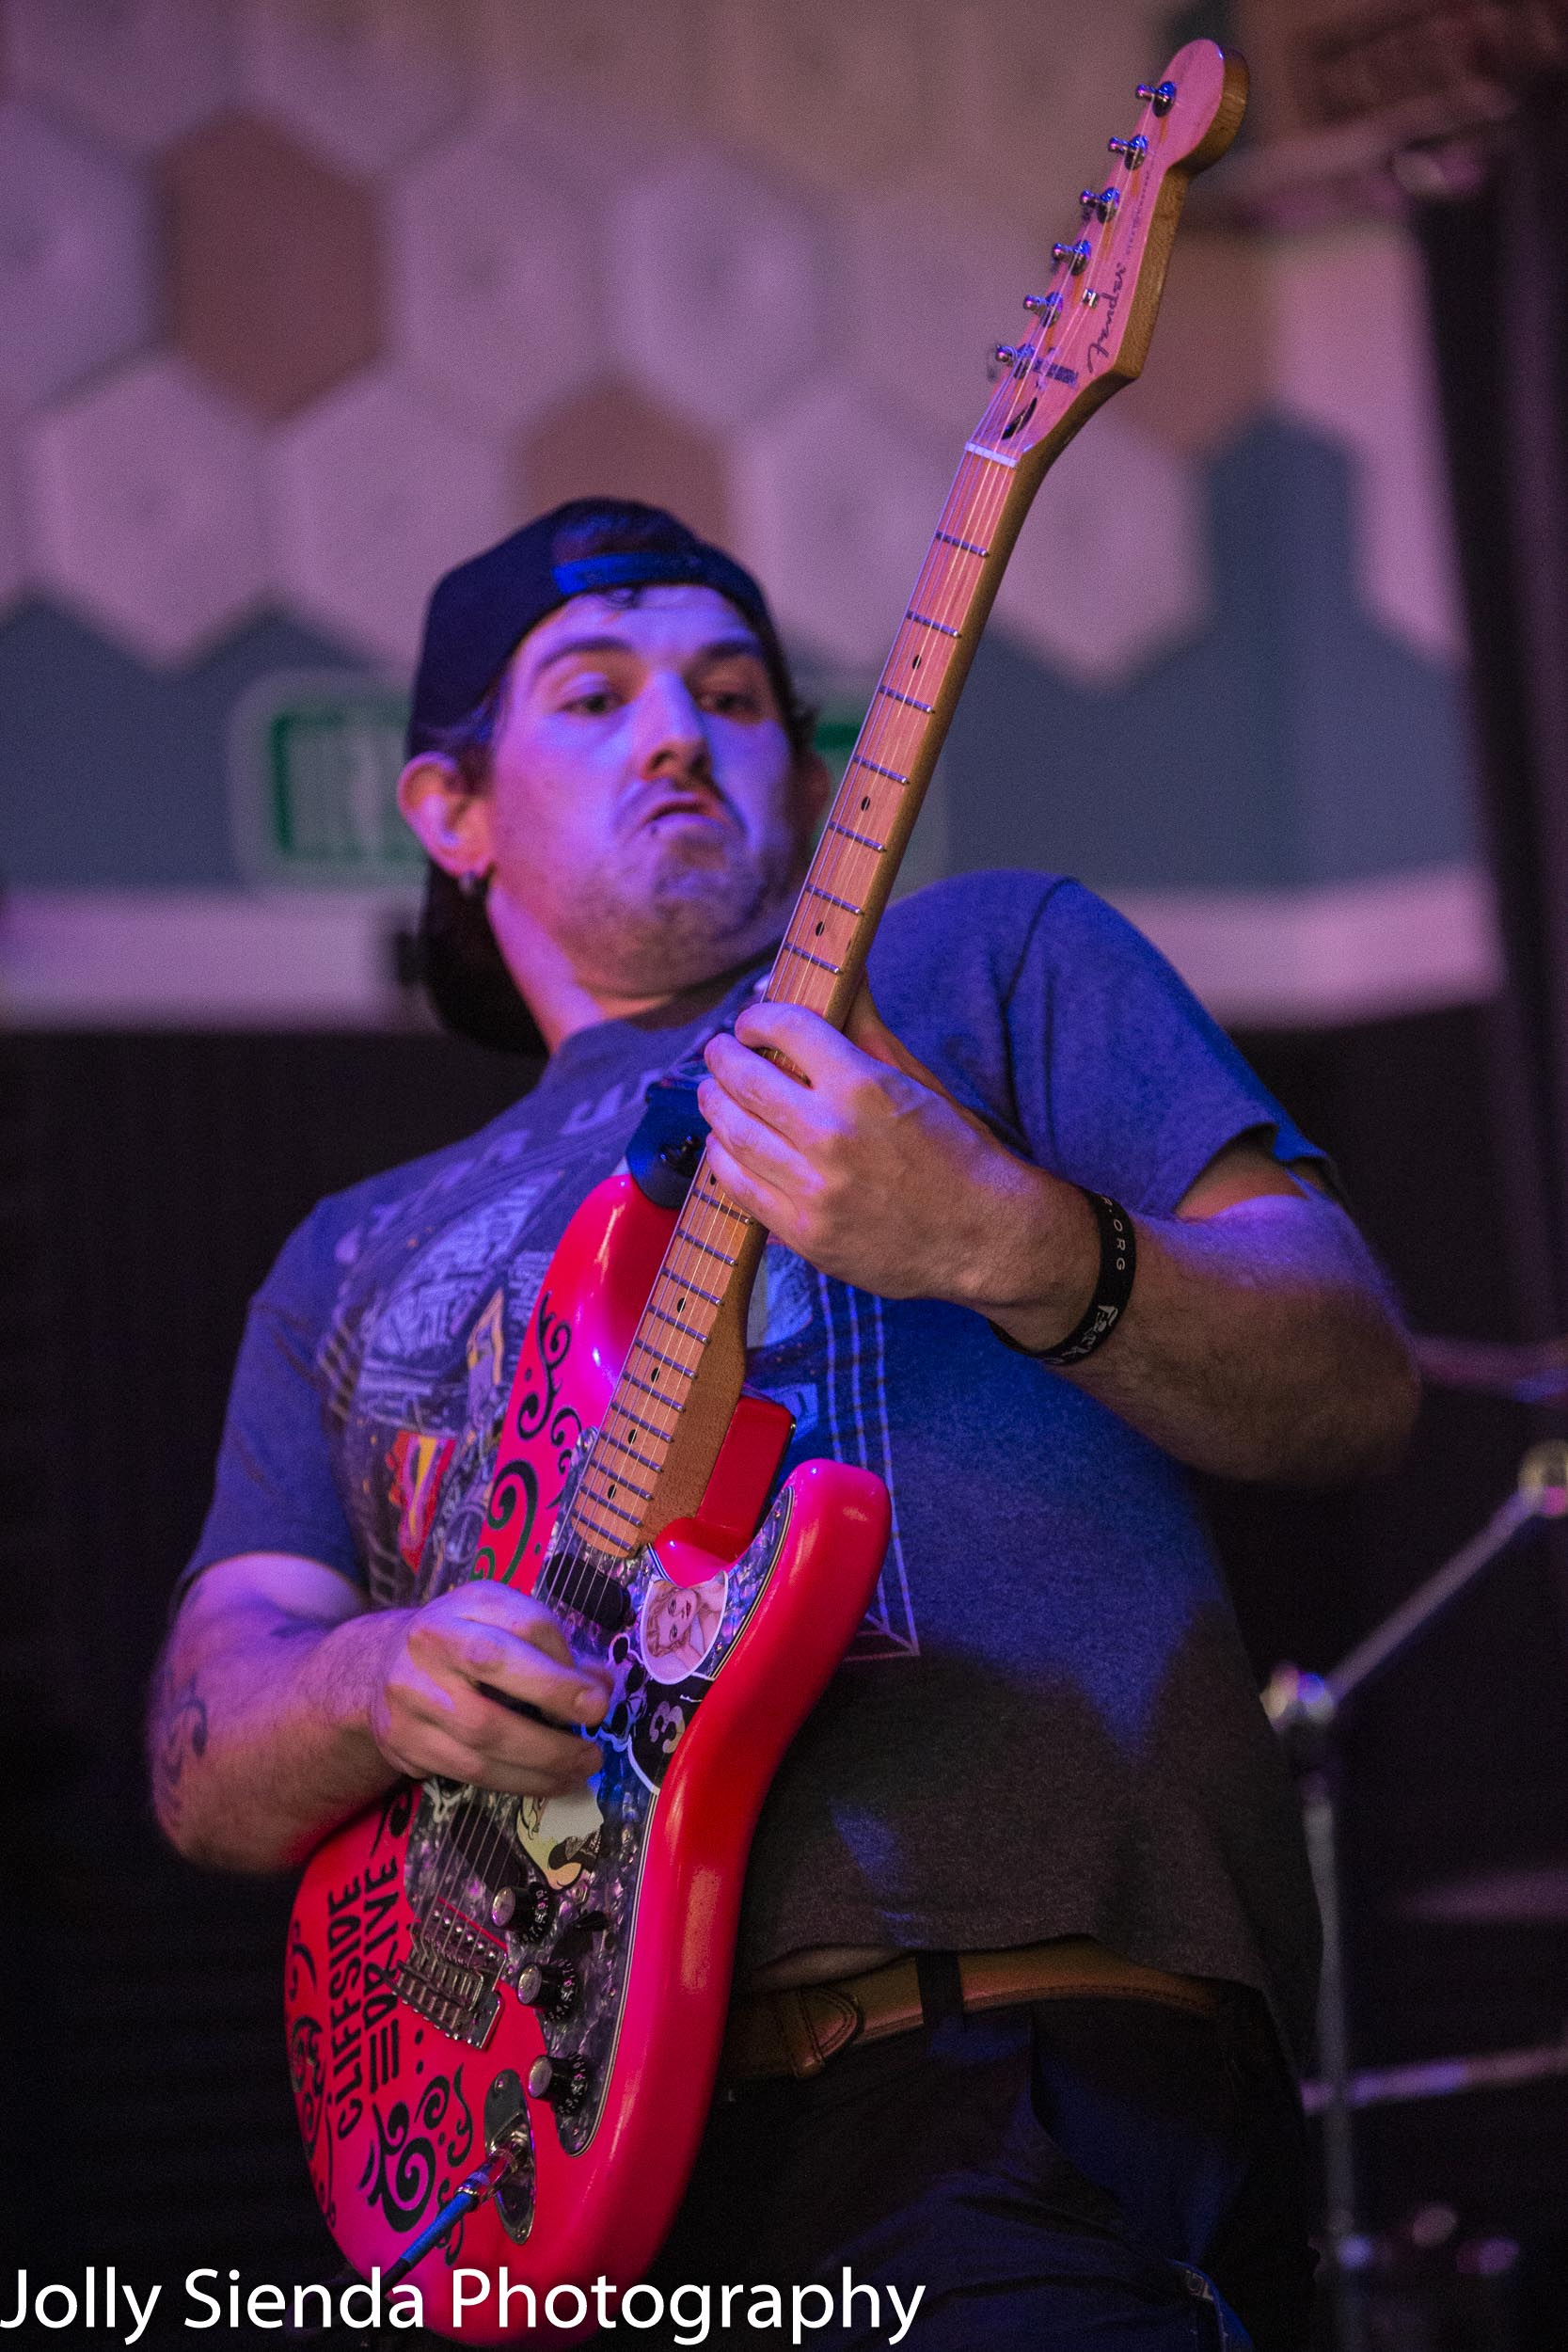 Kitsap Battle of the Bands, Jolly Sienda Photography